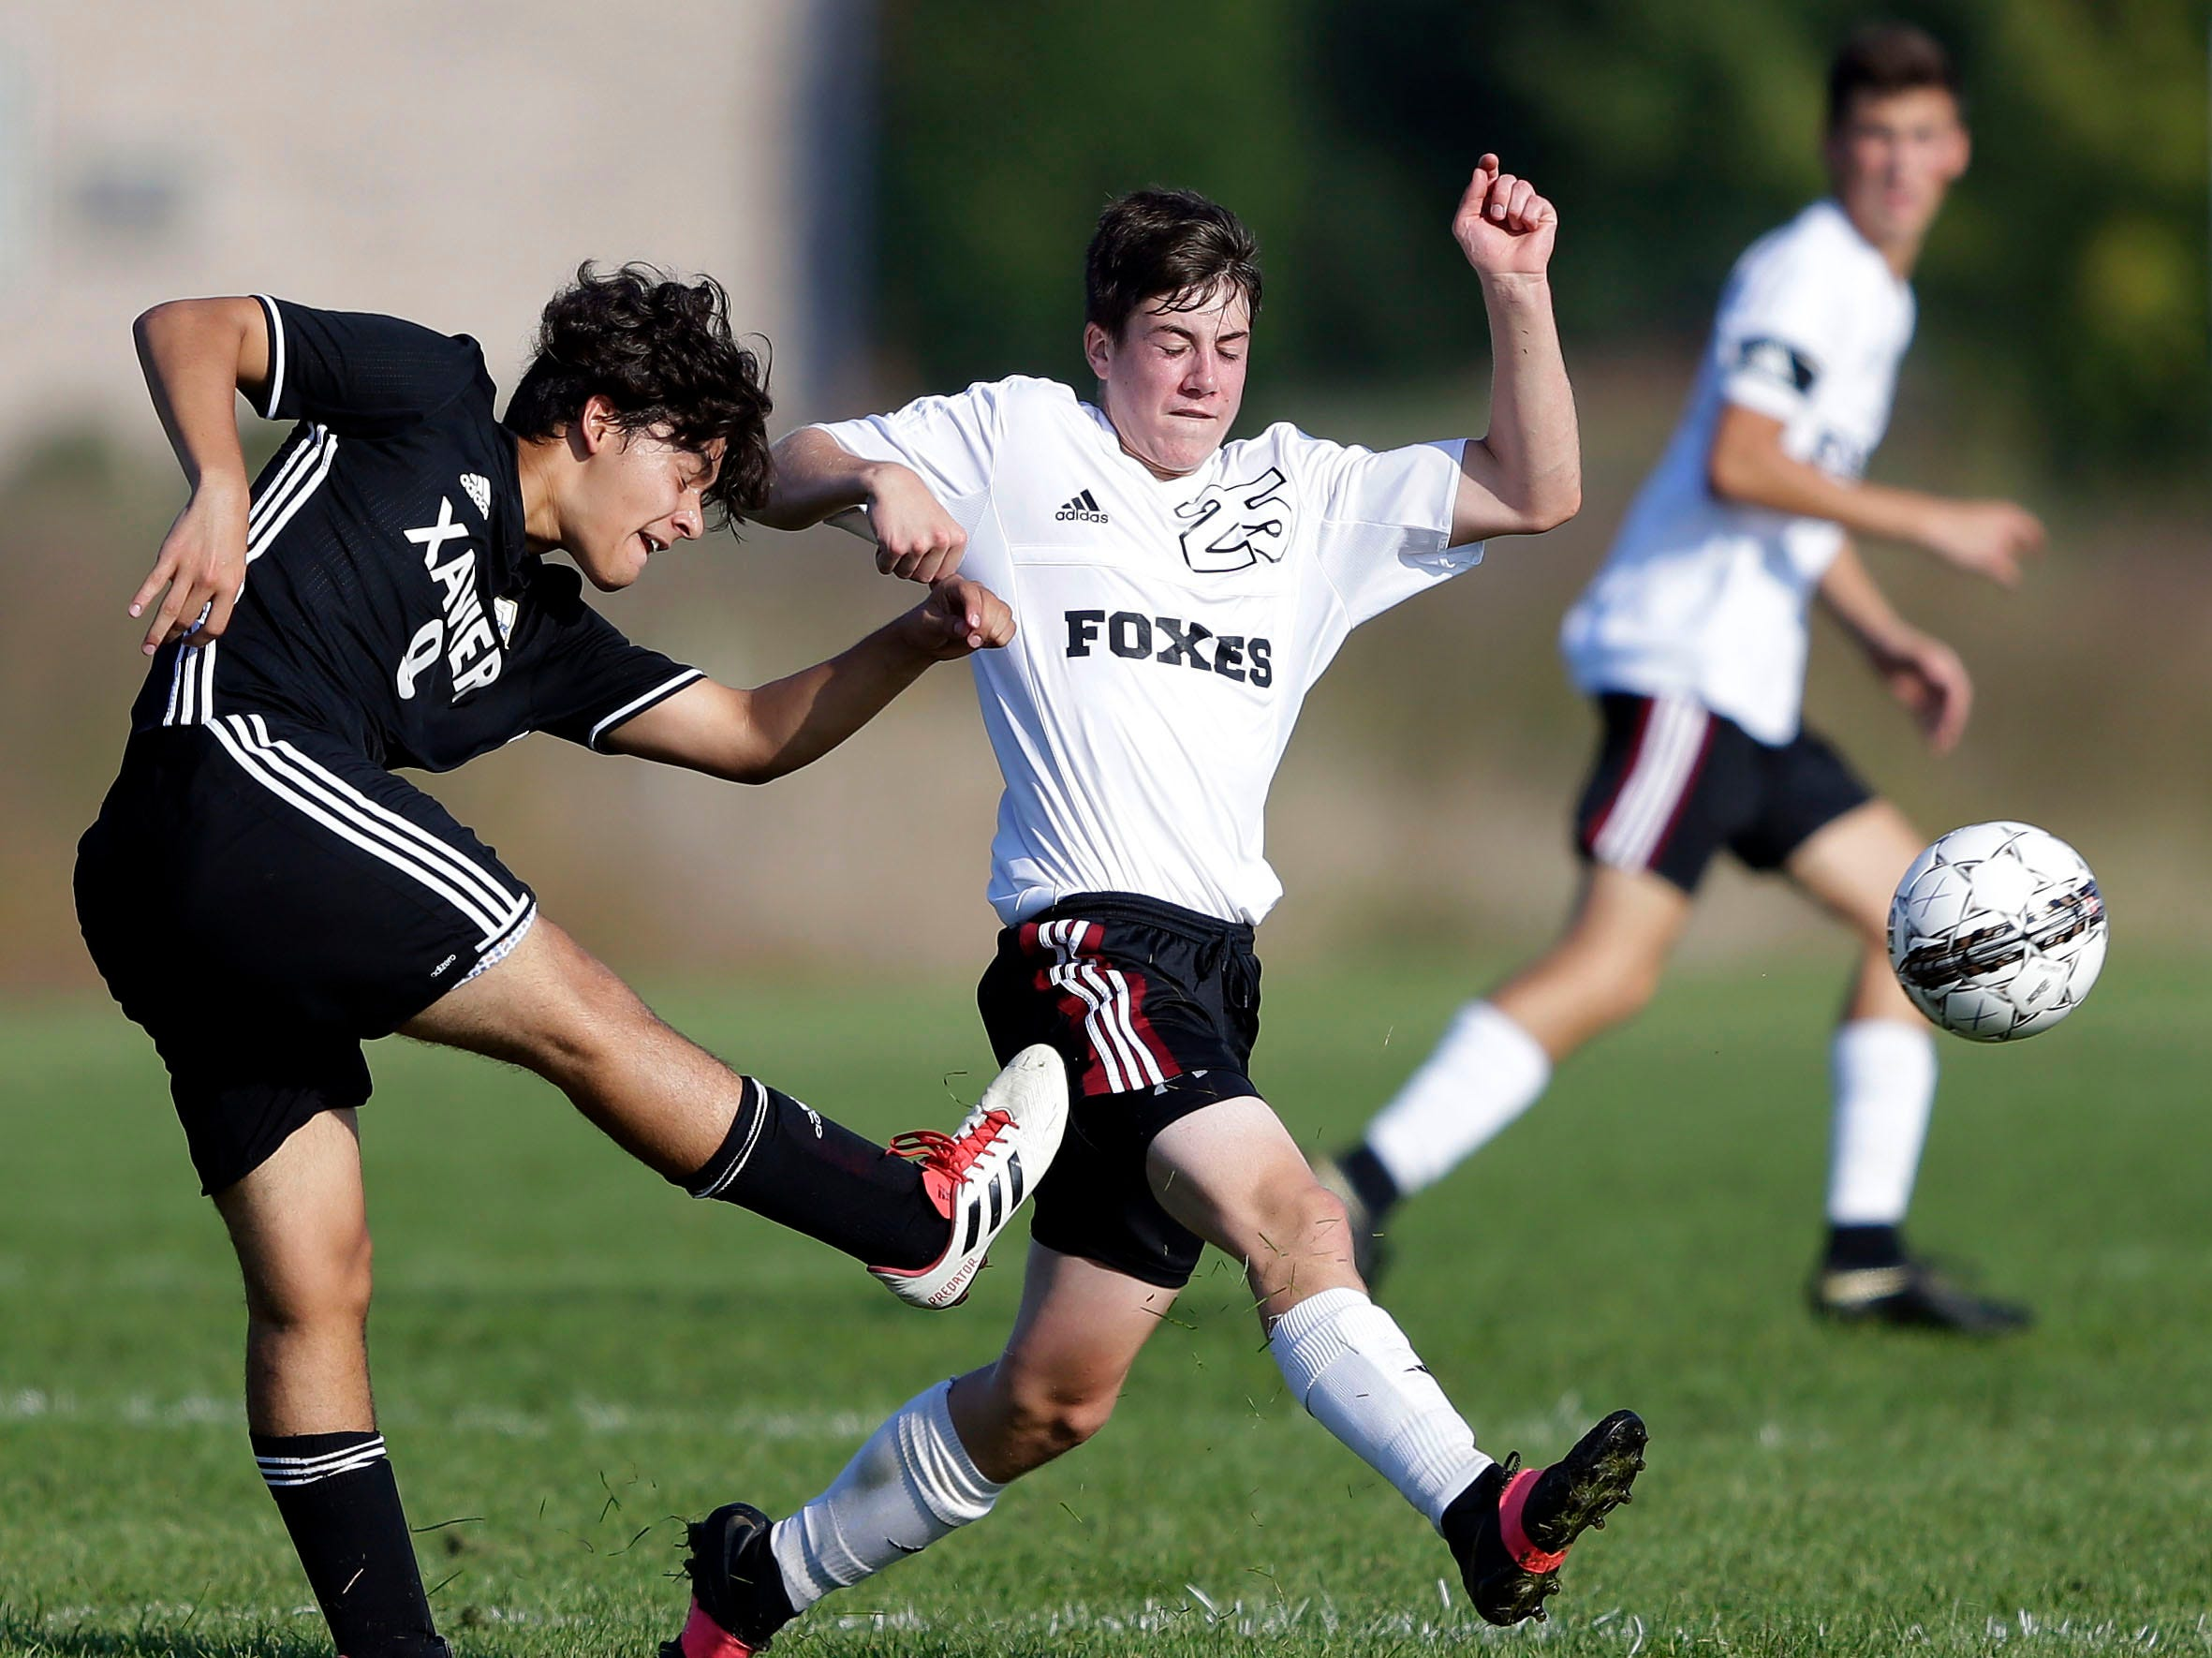 Alex Lopez, left, of Xavier passes while being defended by Addison Fett of Fox Valley Lutheran in the Xavier boys soccer tournament Saturday, September 15, 2018, at the Scheels USA Sports Complex in Appleton, Wis.